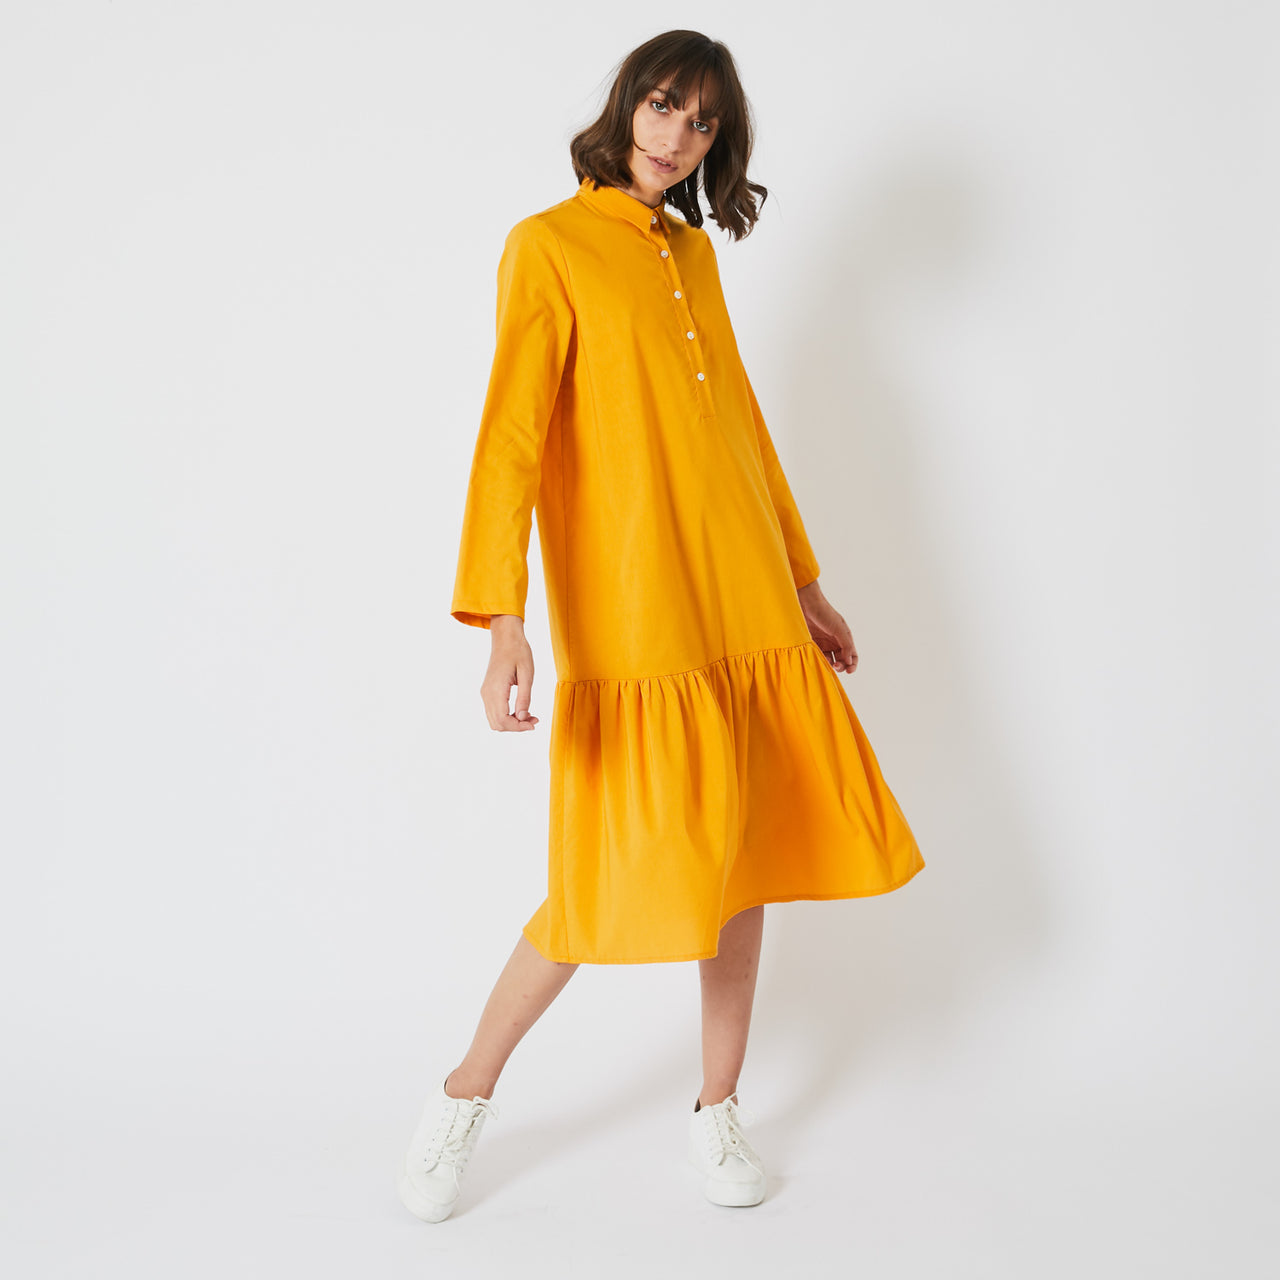 Baby-Lee Yellow Dress